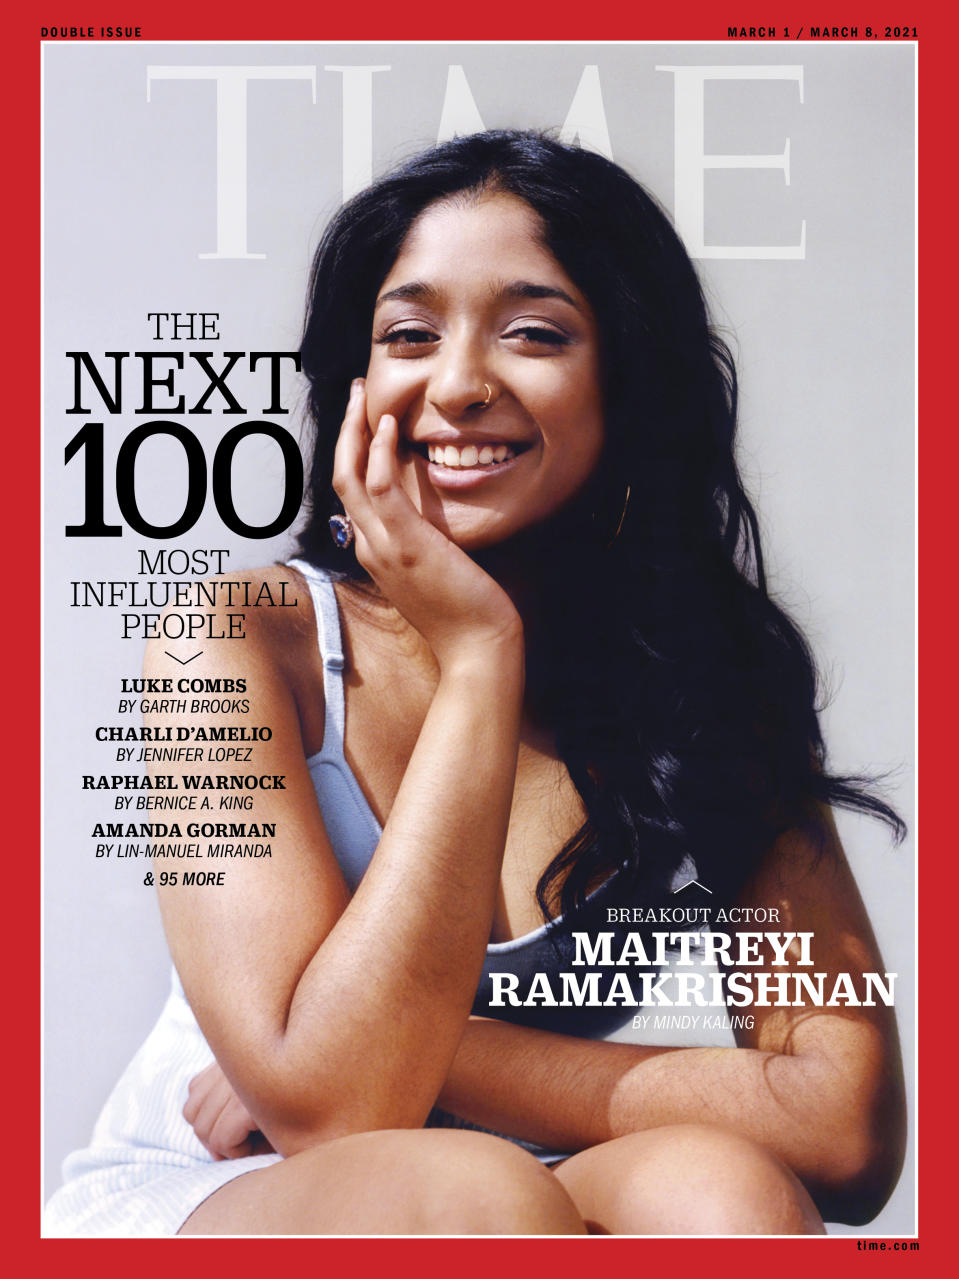 Maitreyi Ramakrishnan TIME100 Next cover (Photograph by Lindsay Ellary for TIME)